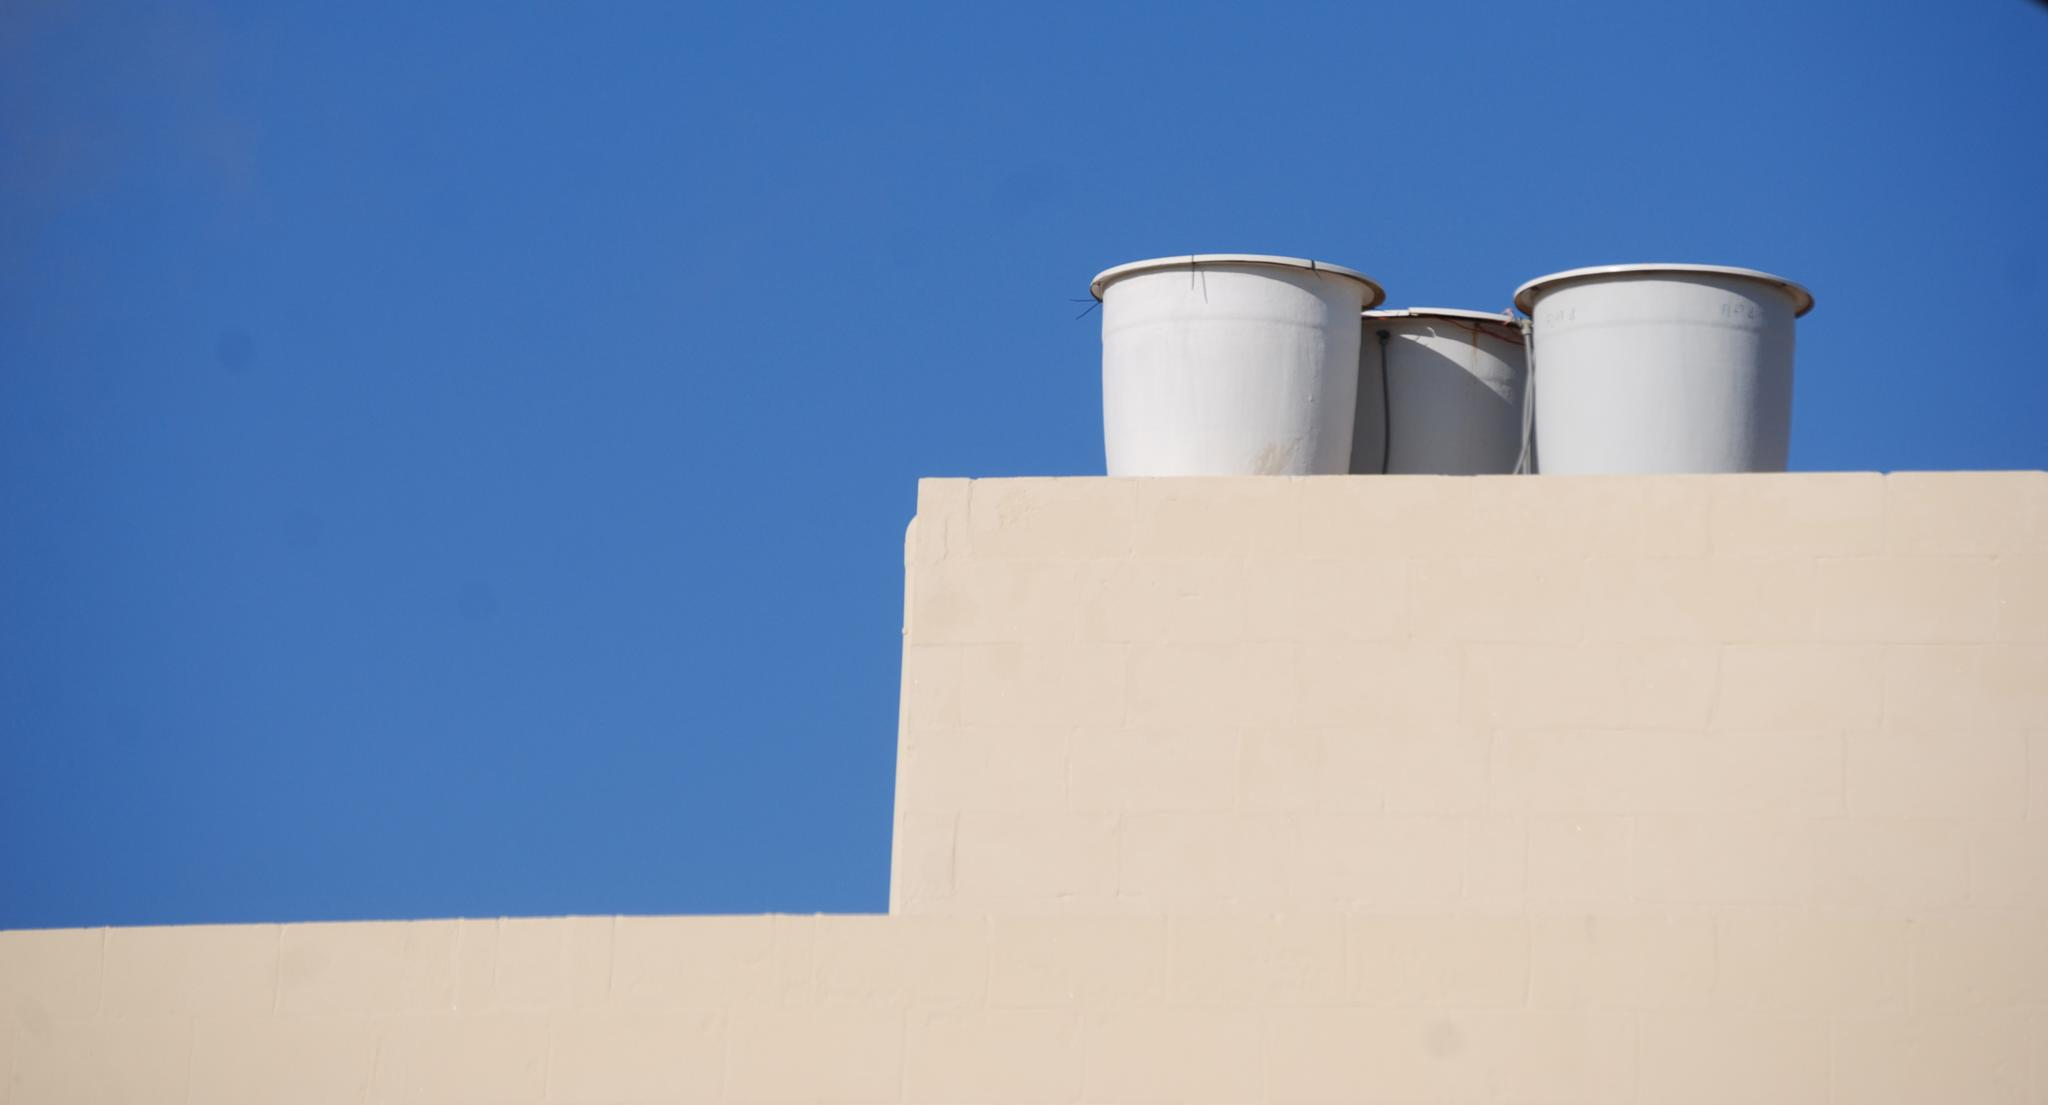 rainwater collection containers, Gozo by leena.ekroth